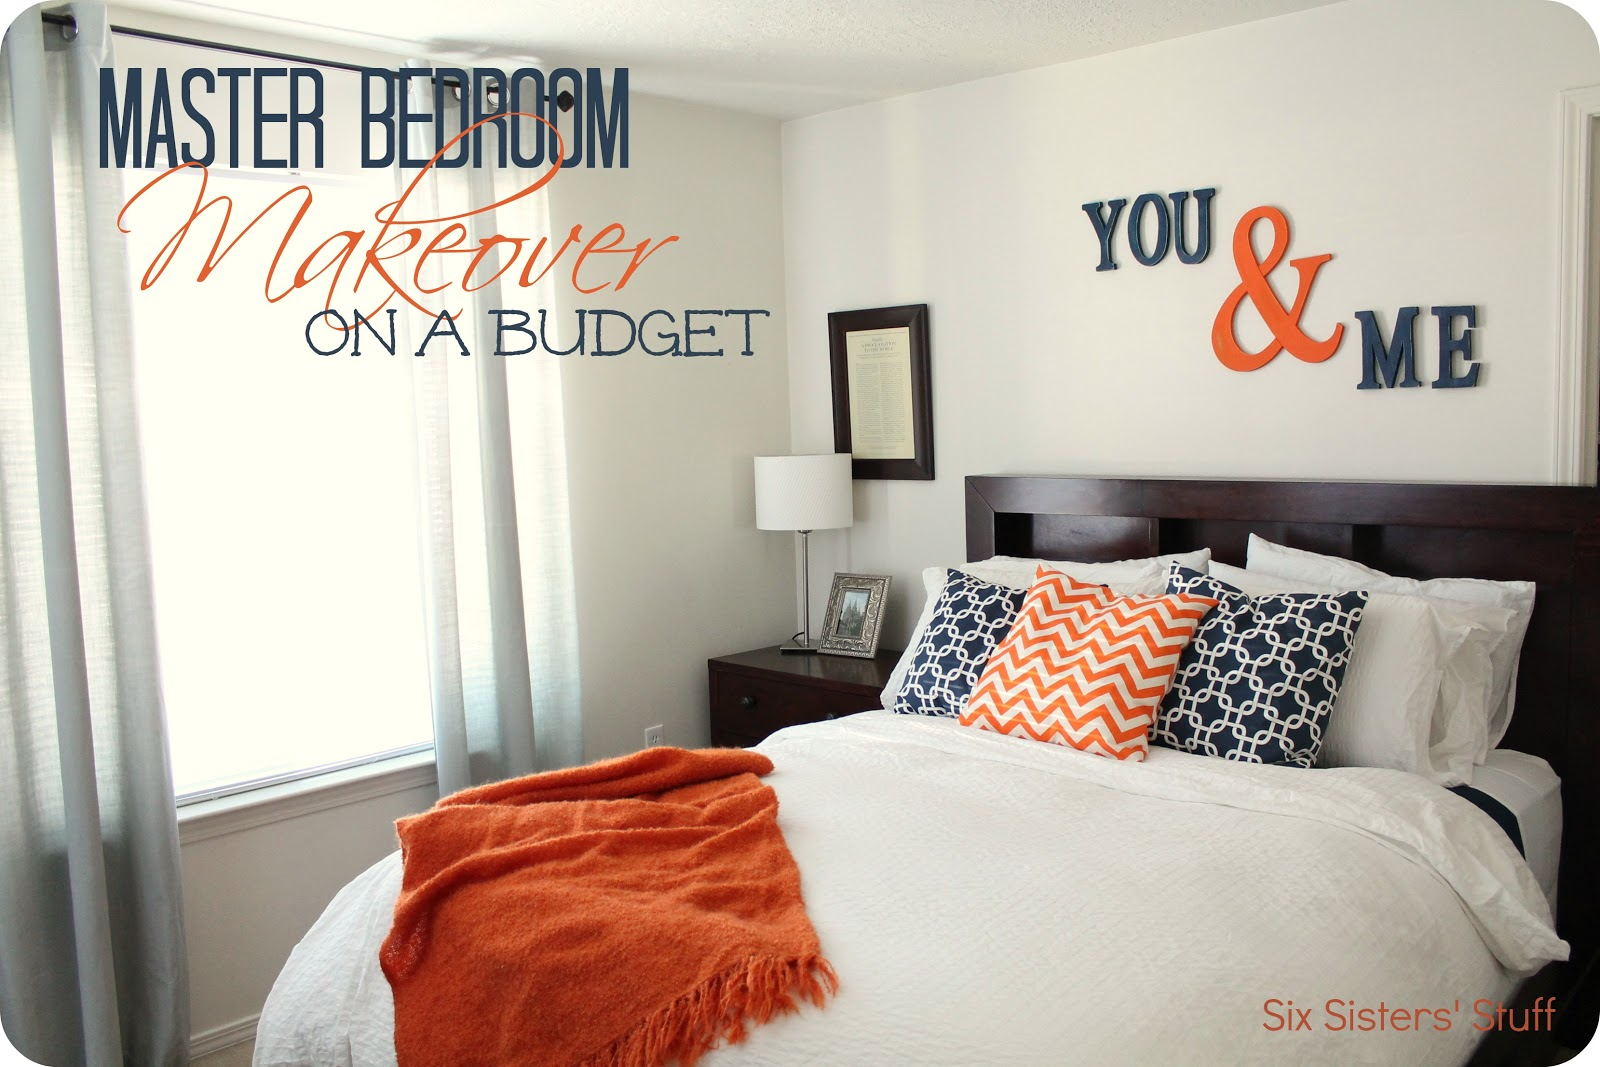 Master Bedroom Makeover On A Budget Six Sisters 39 Stuff